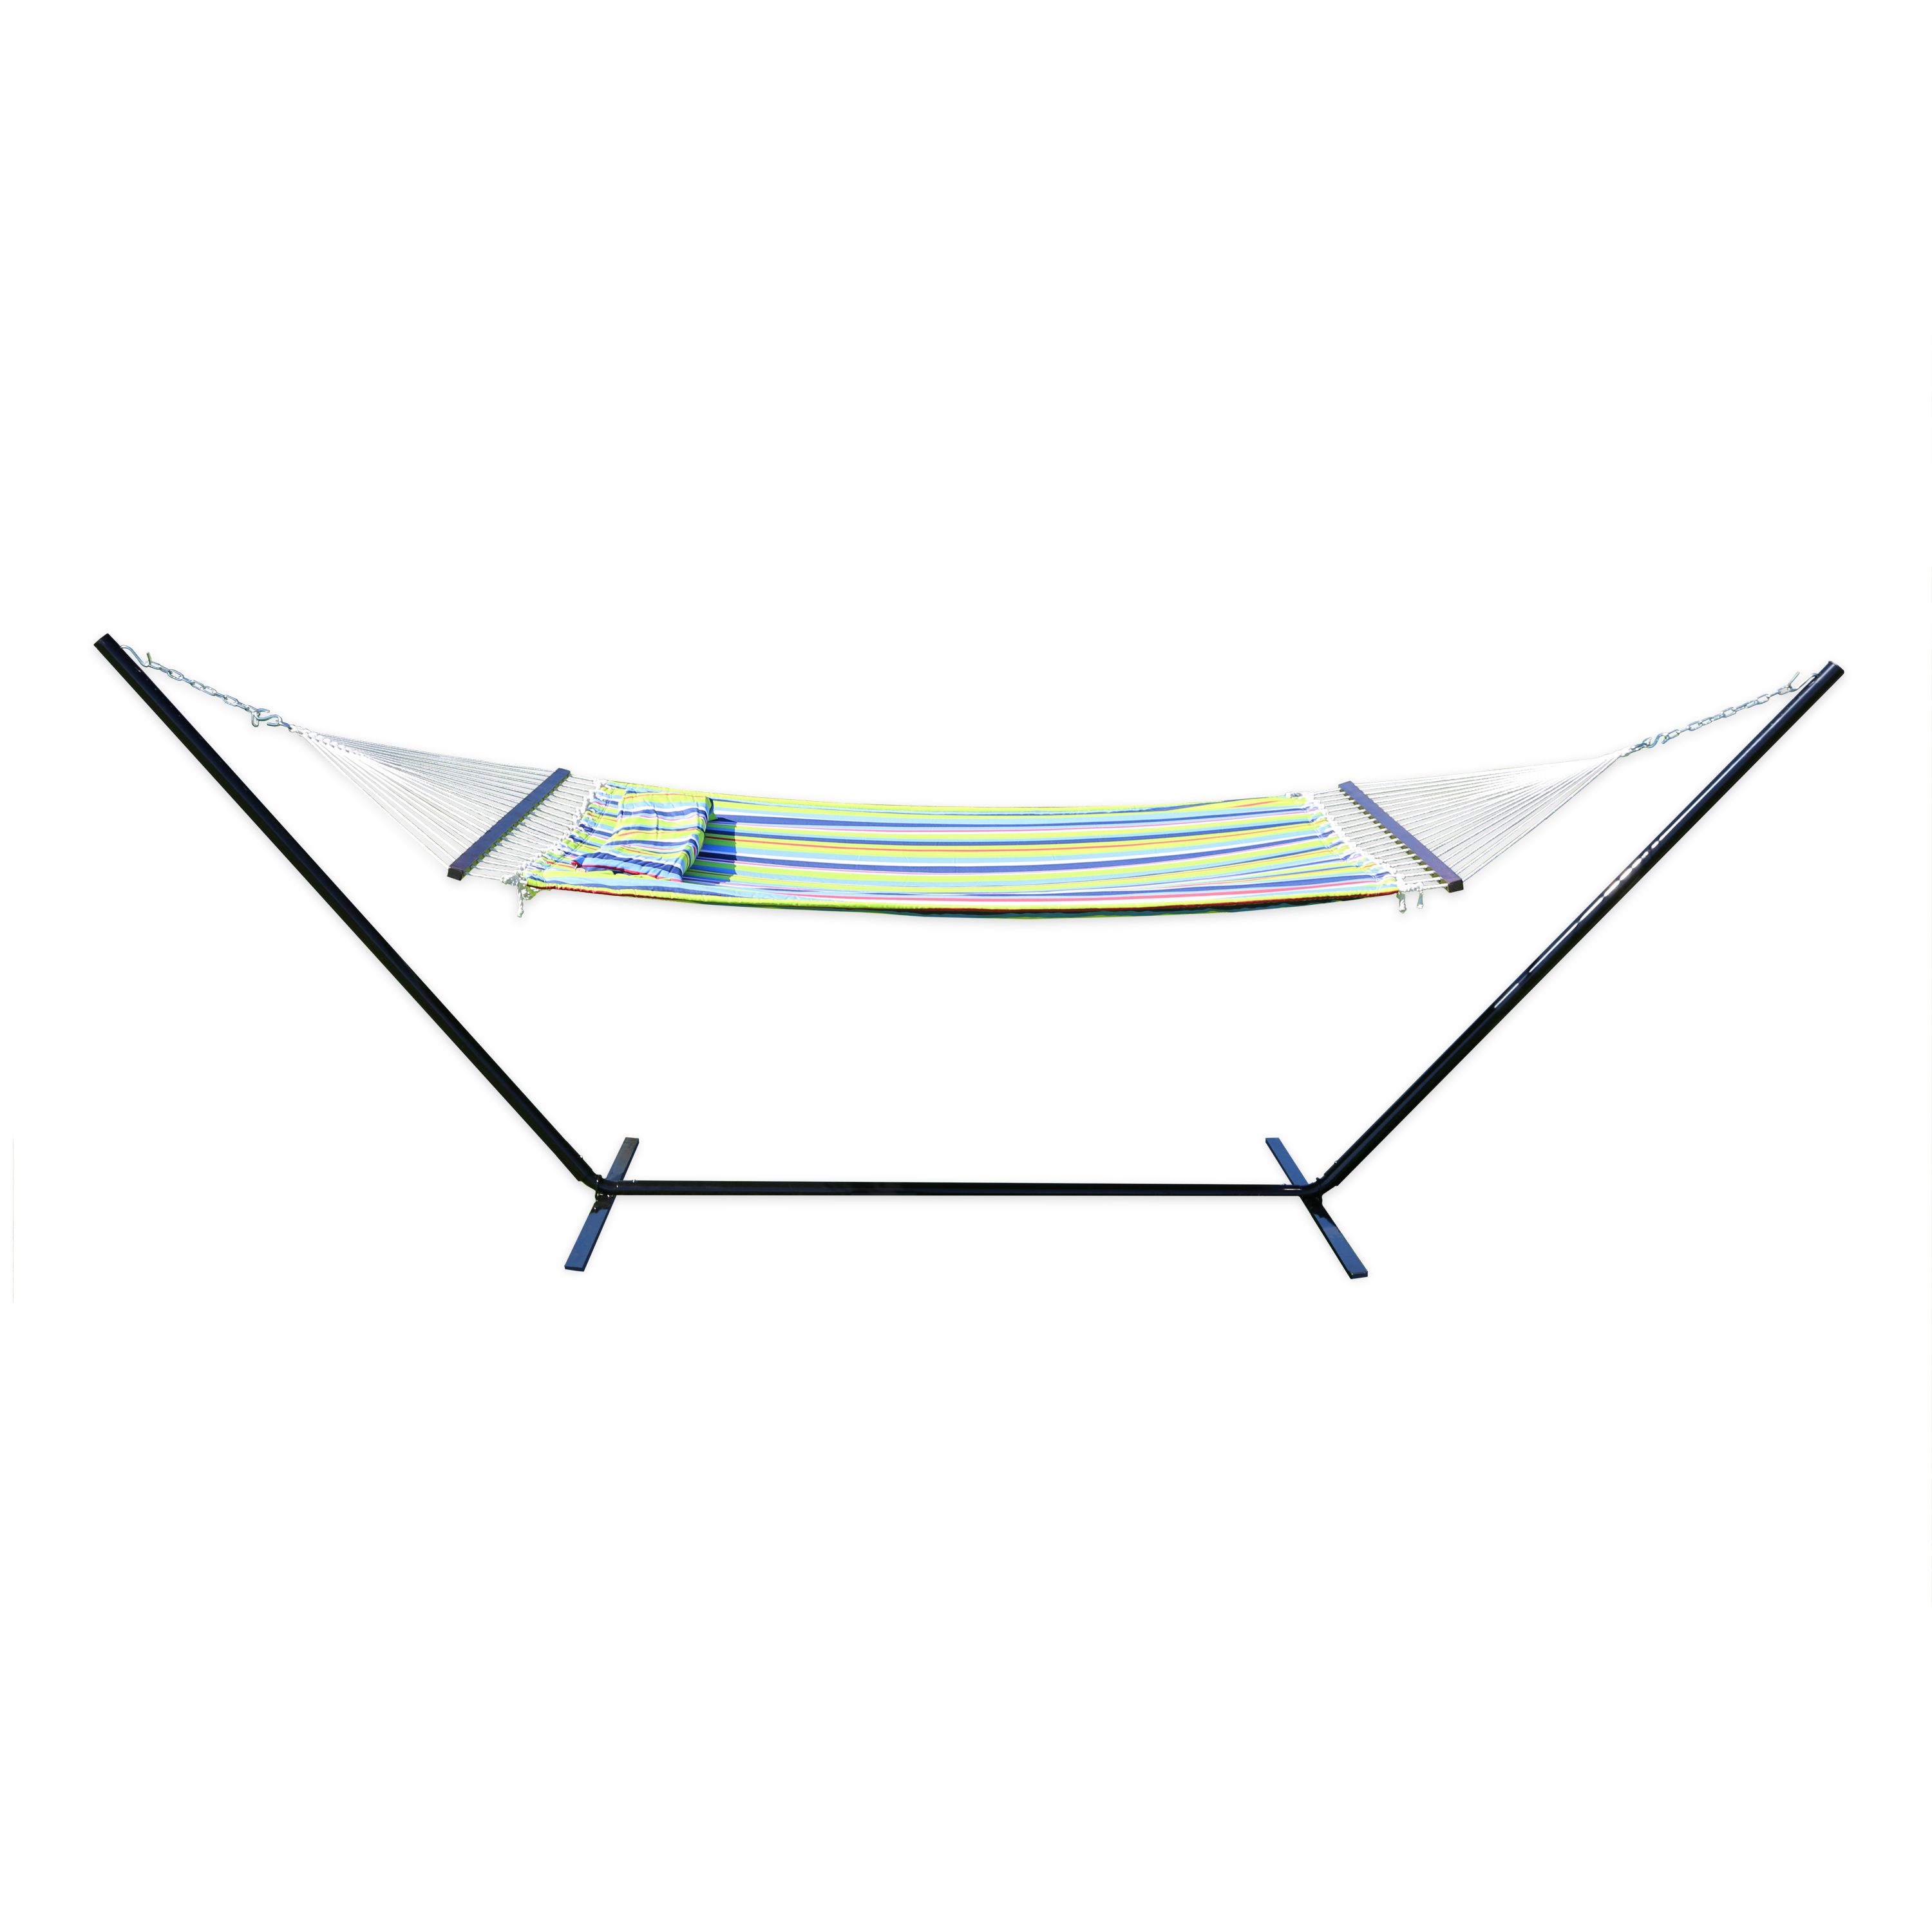 "Stansport Antigua Cotton Hammock w/Stand - Double - 78"" x 57"